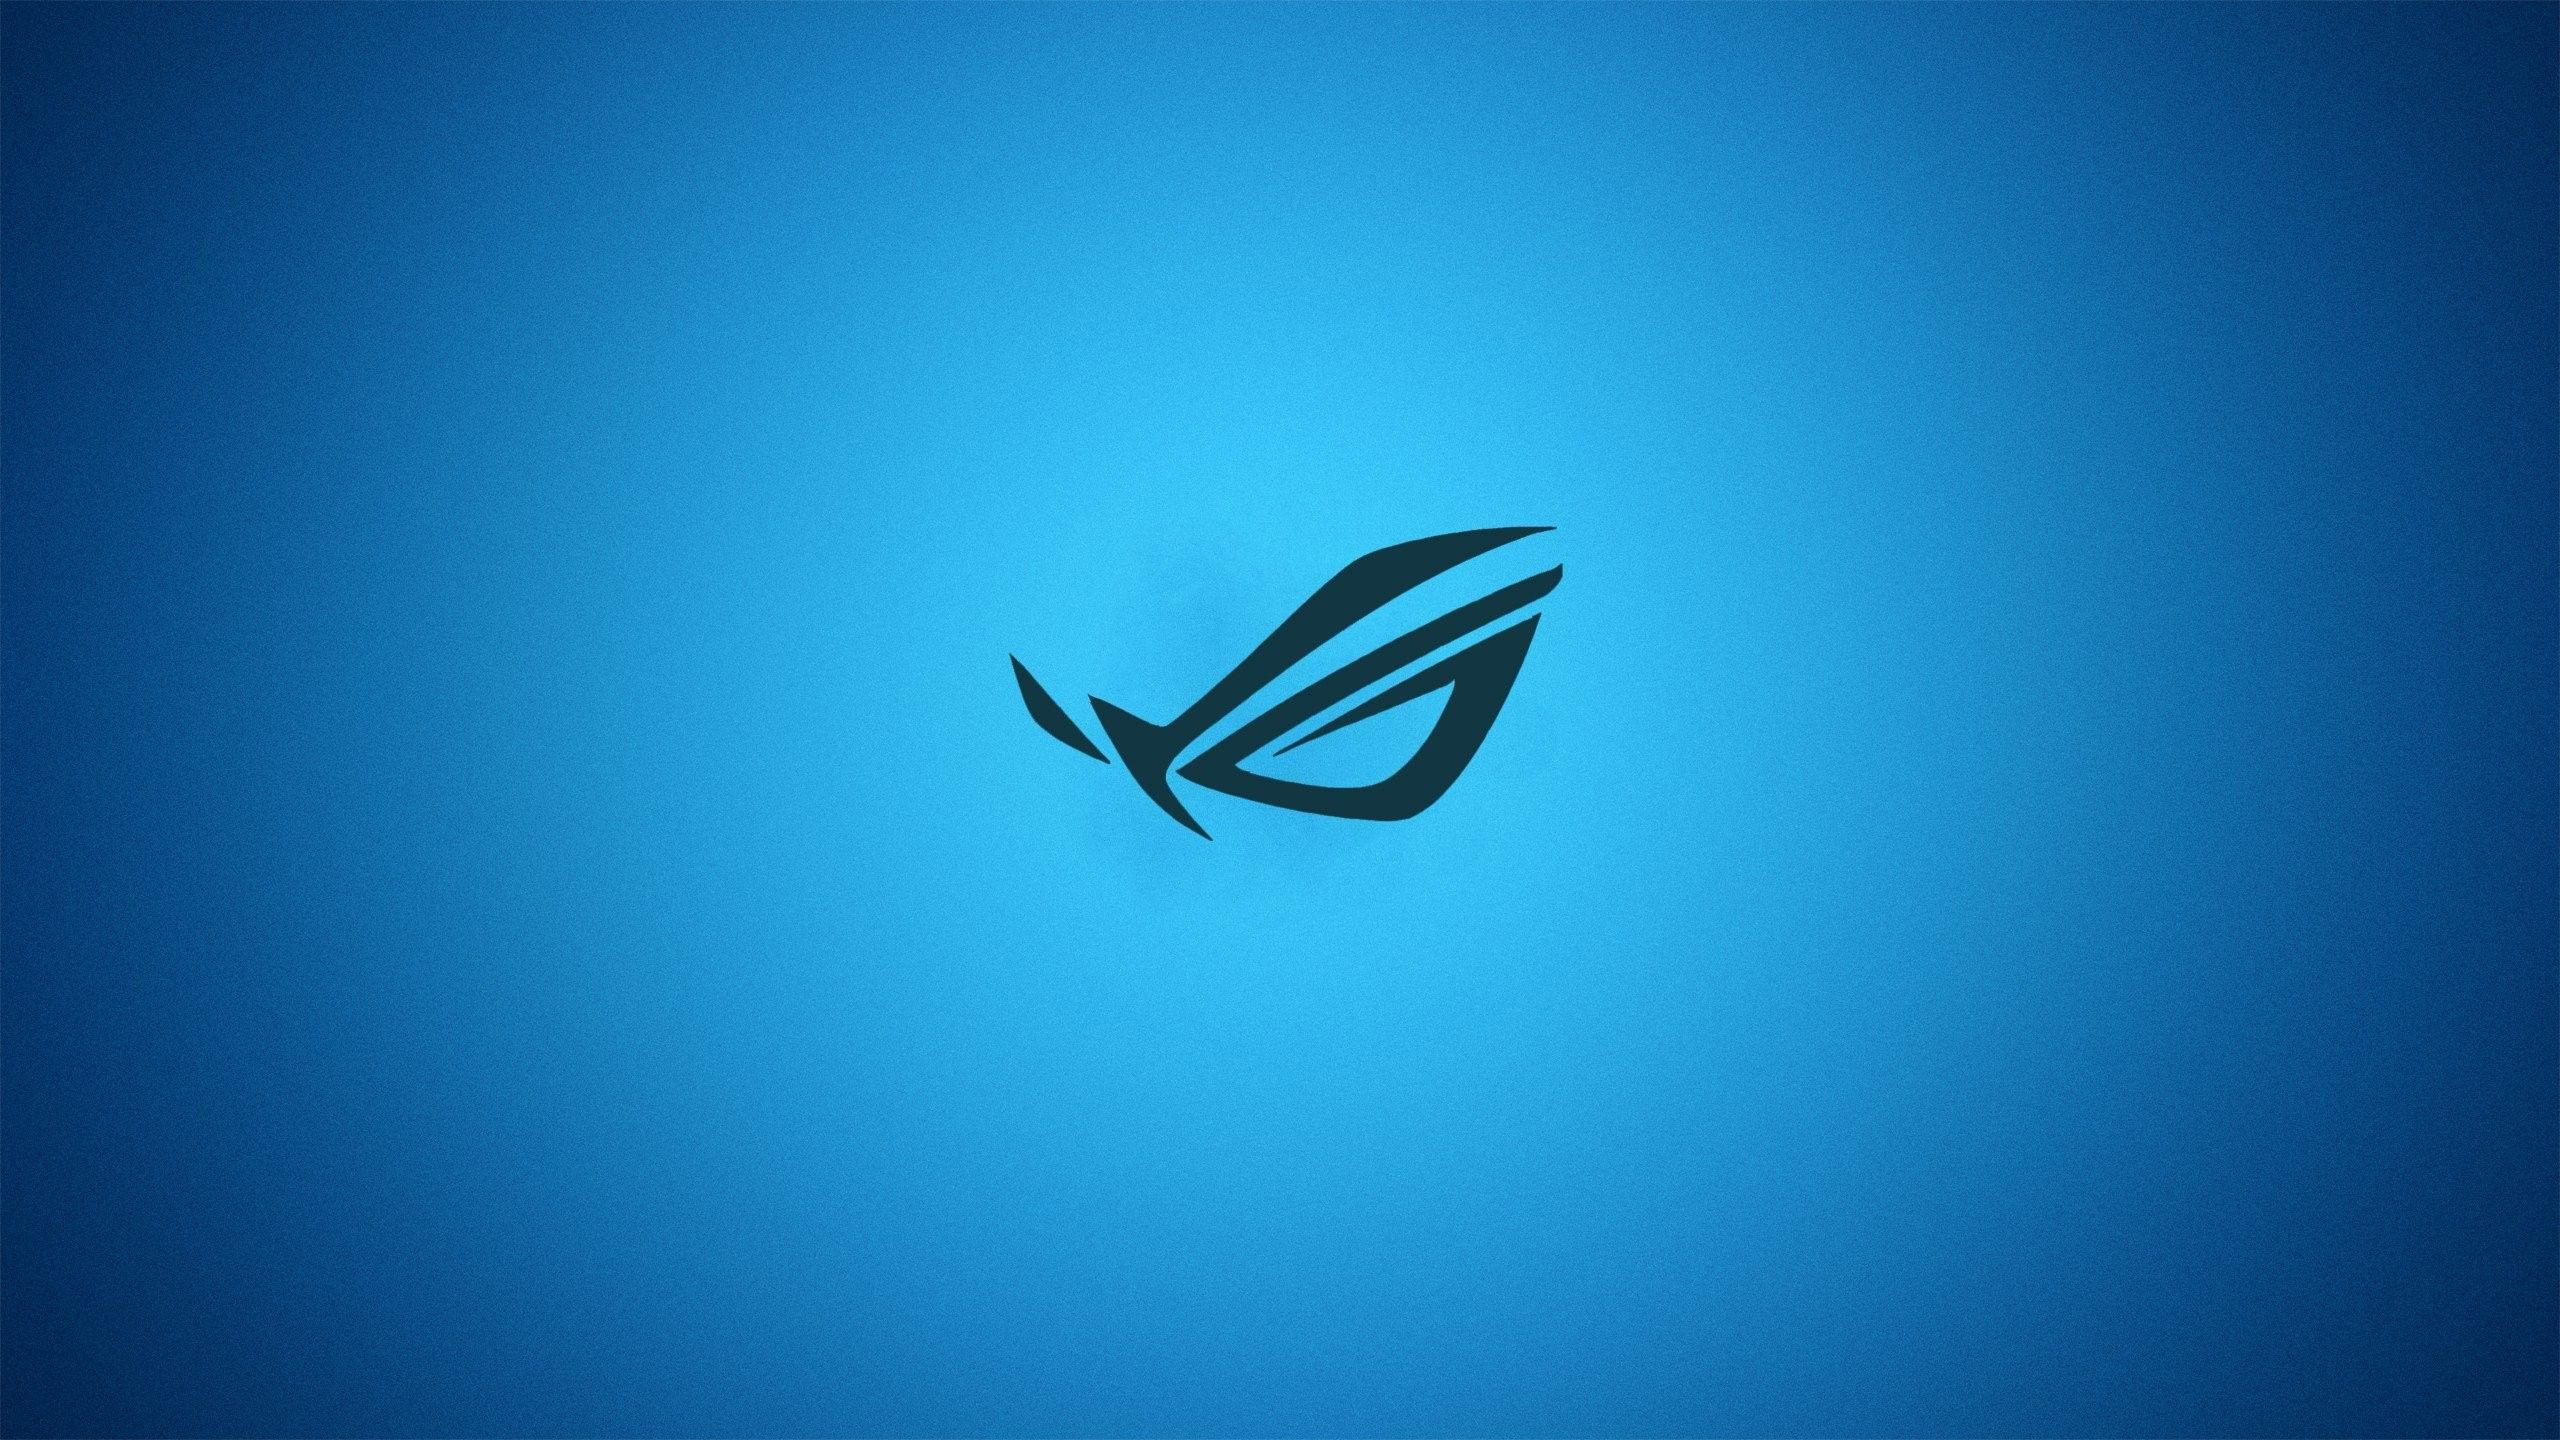 Blue Gaming Wallpapers Top Free Blue Gaming Backgrounds Wallpaperaccess